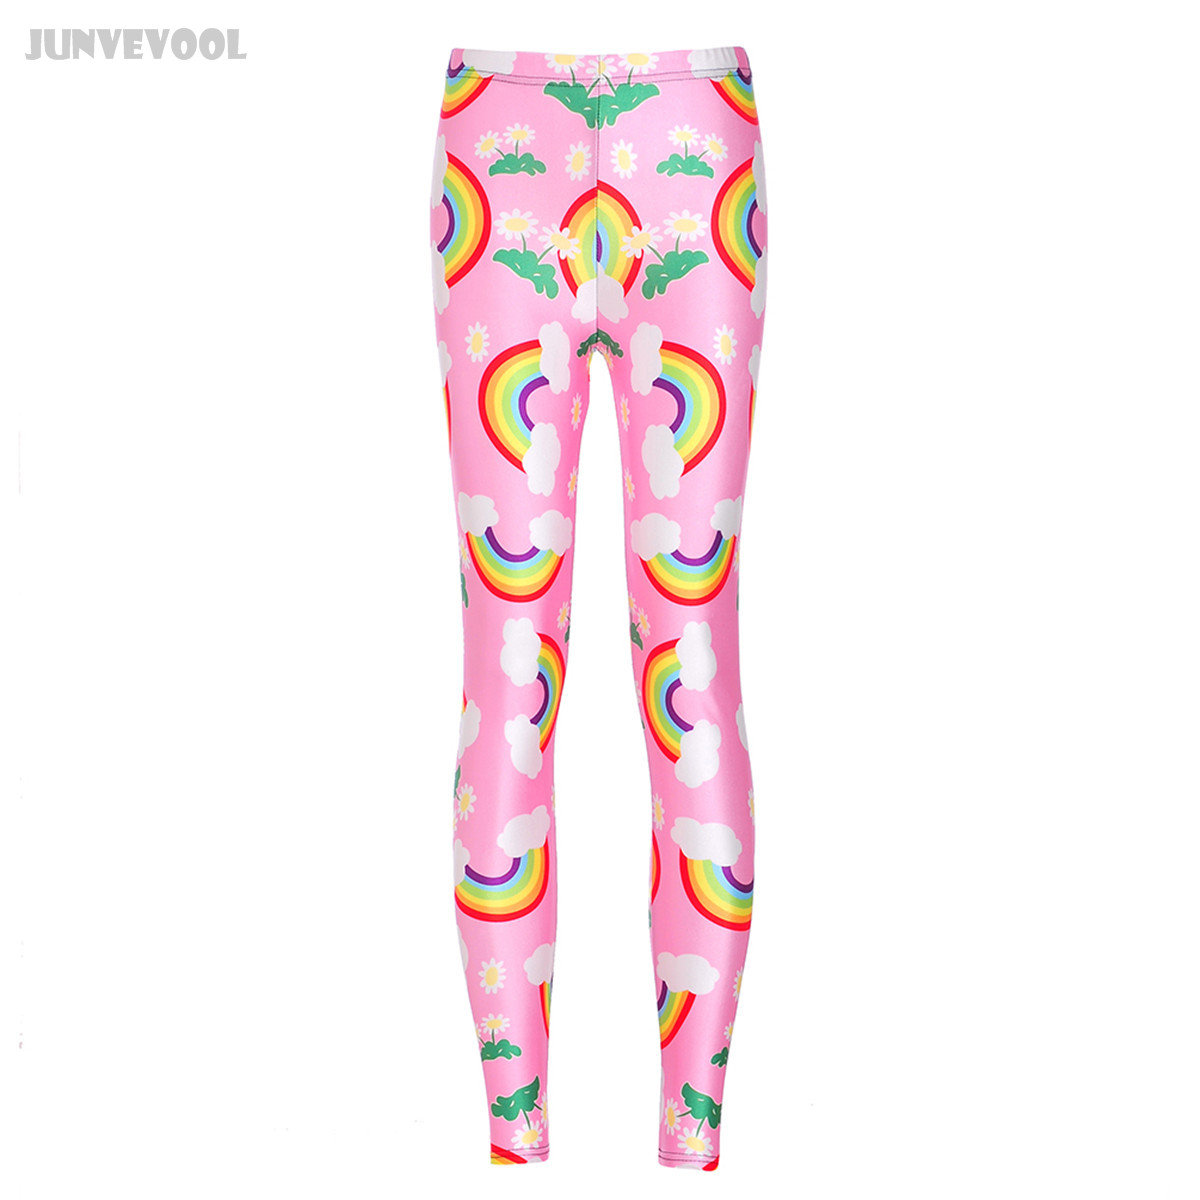 Work Out Leggings Pink Rainbow Print Straight Slim Fit Pants Bikers Comfort Fitness Clothing Stretch Pants Trousers Skinny Pants